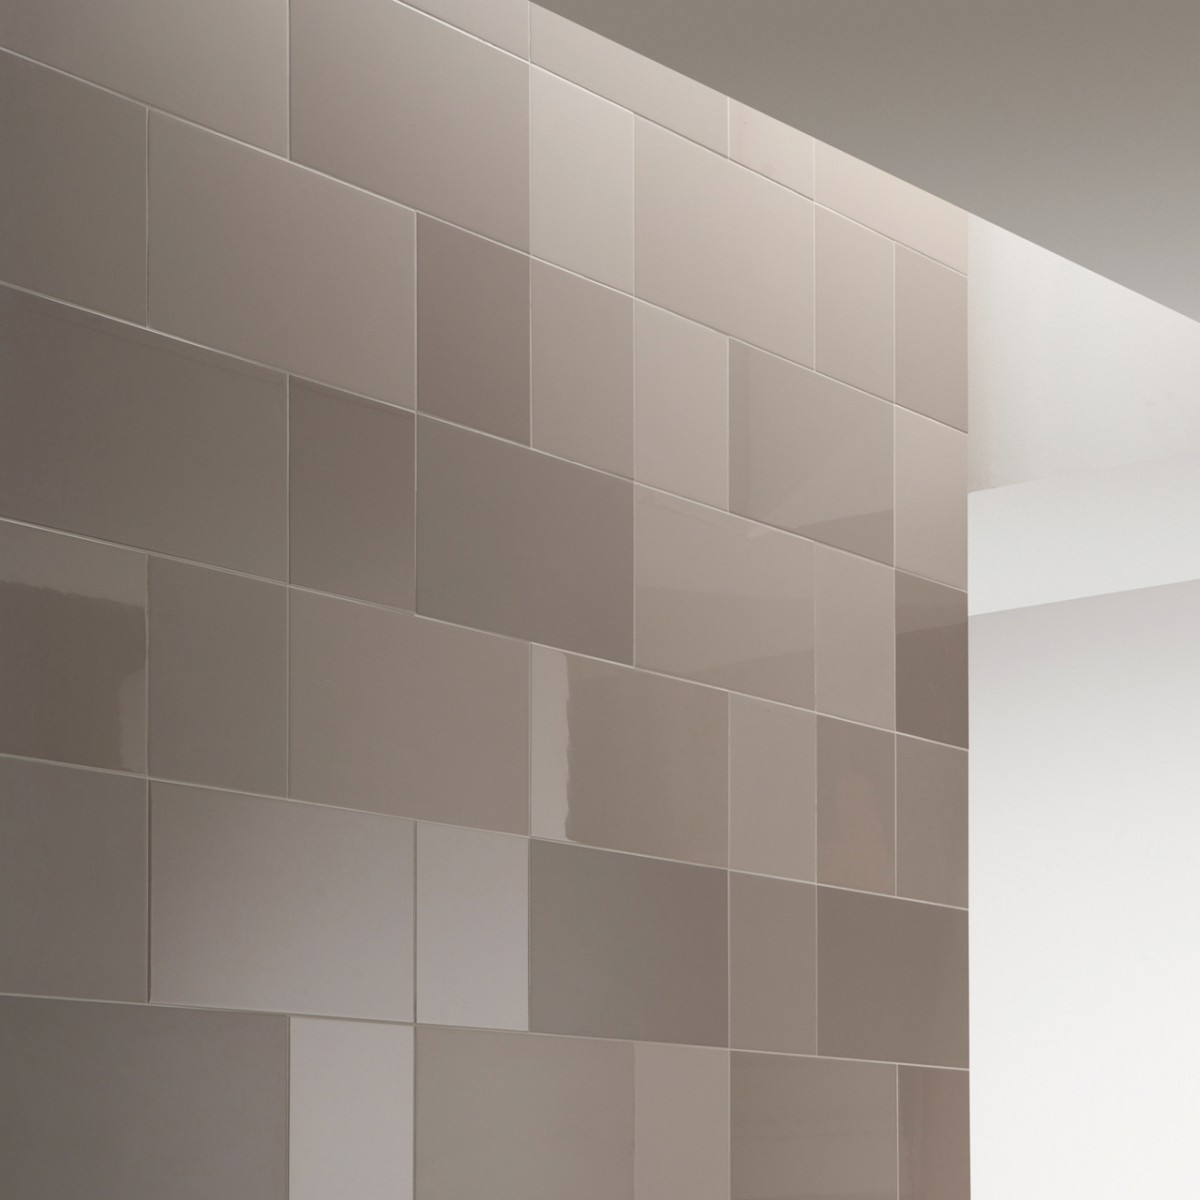 Murals Blend > Products > Mosa tiles